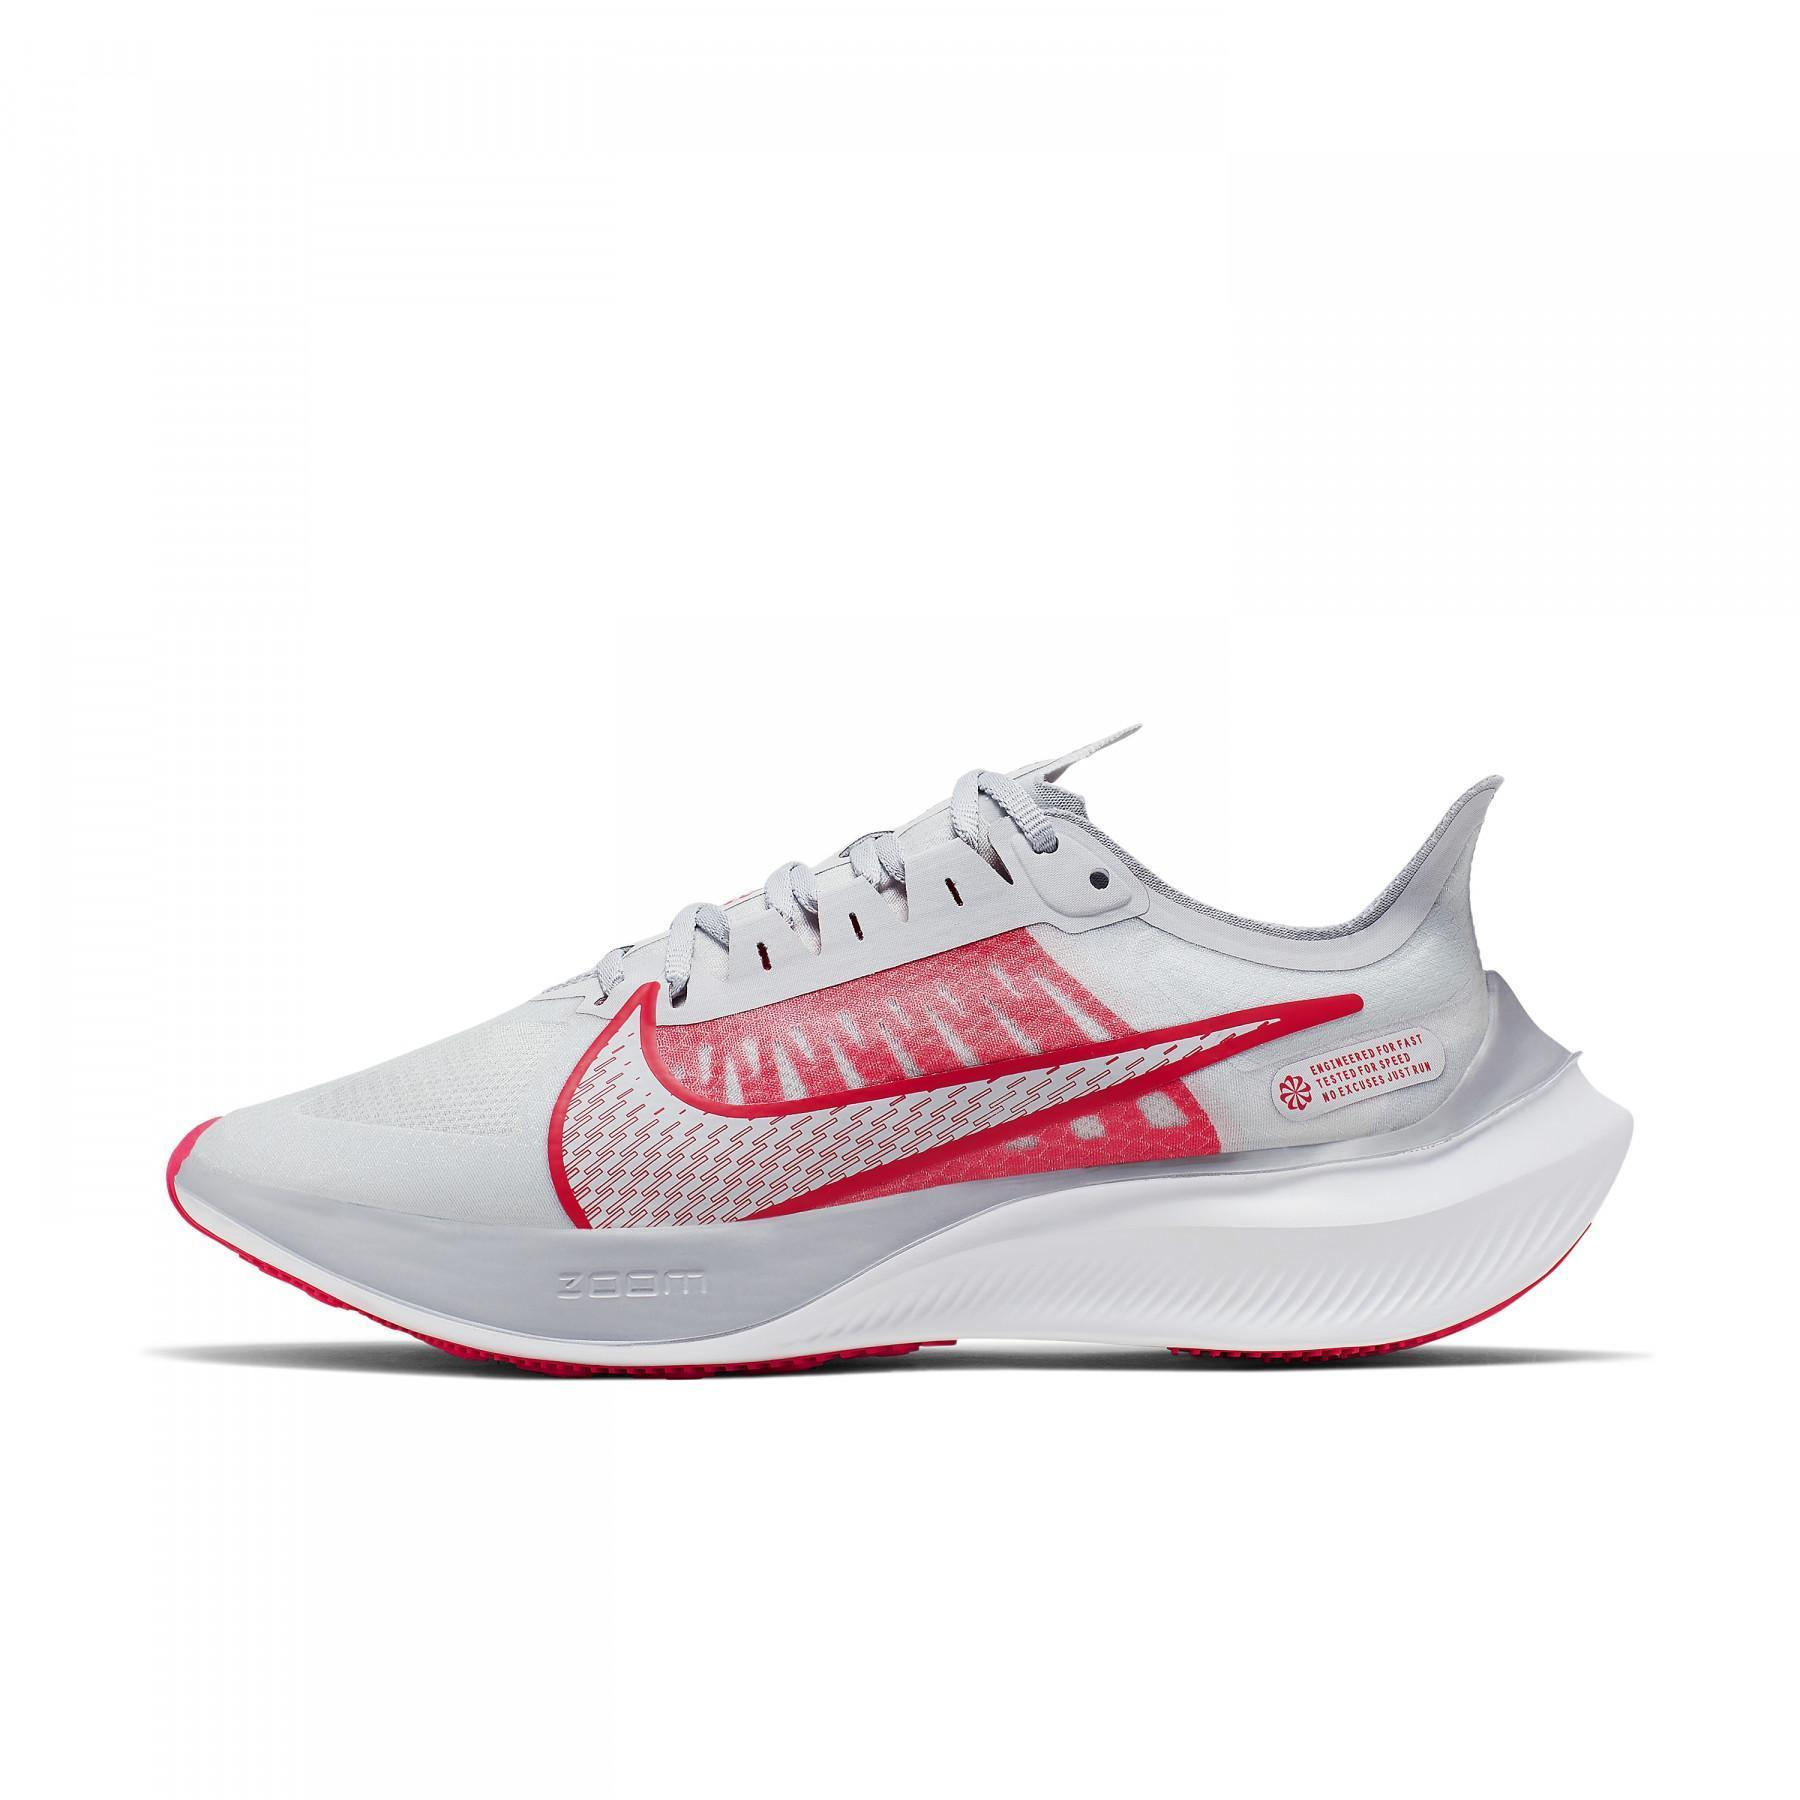 Chaussures femme Nike Zoom Gravity